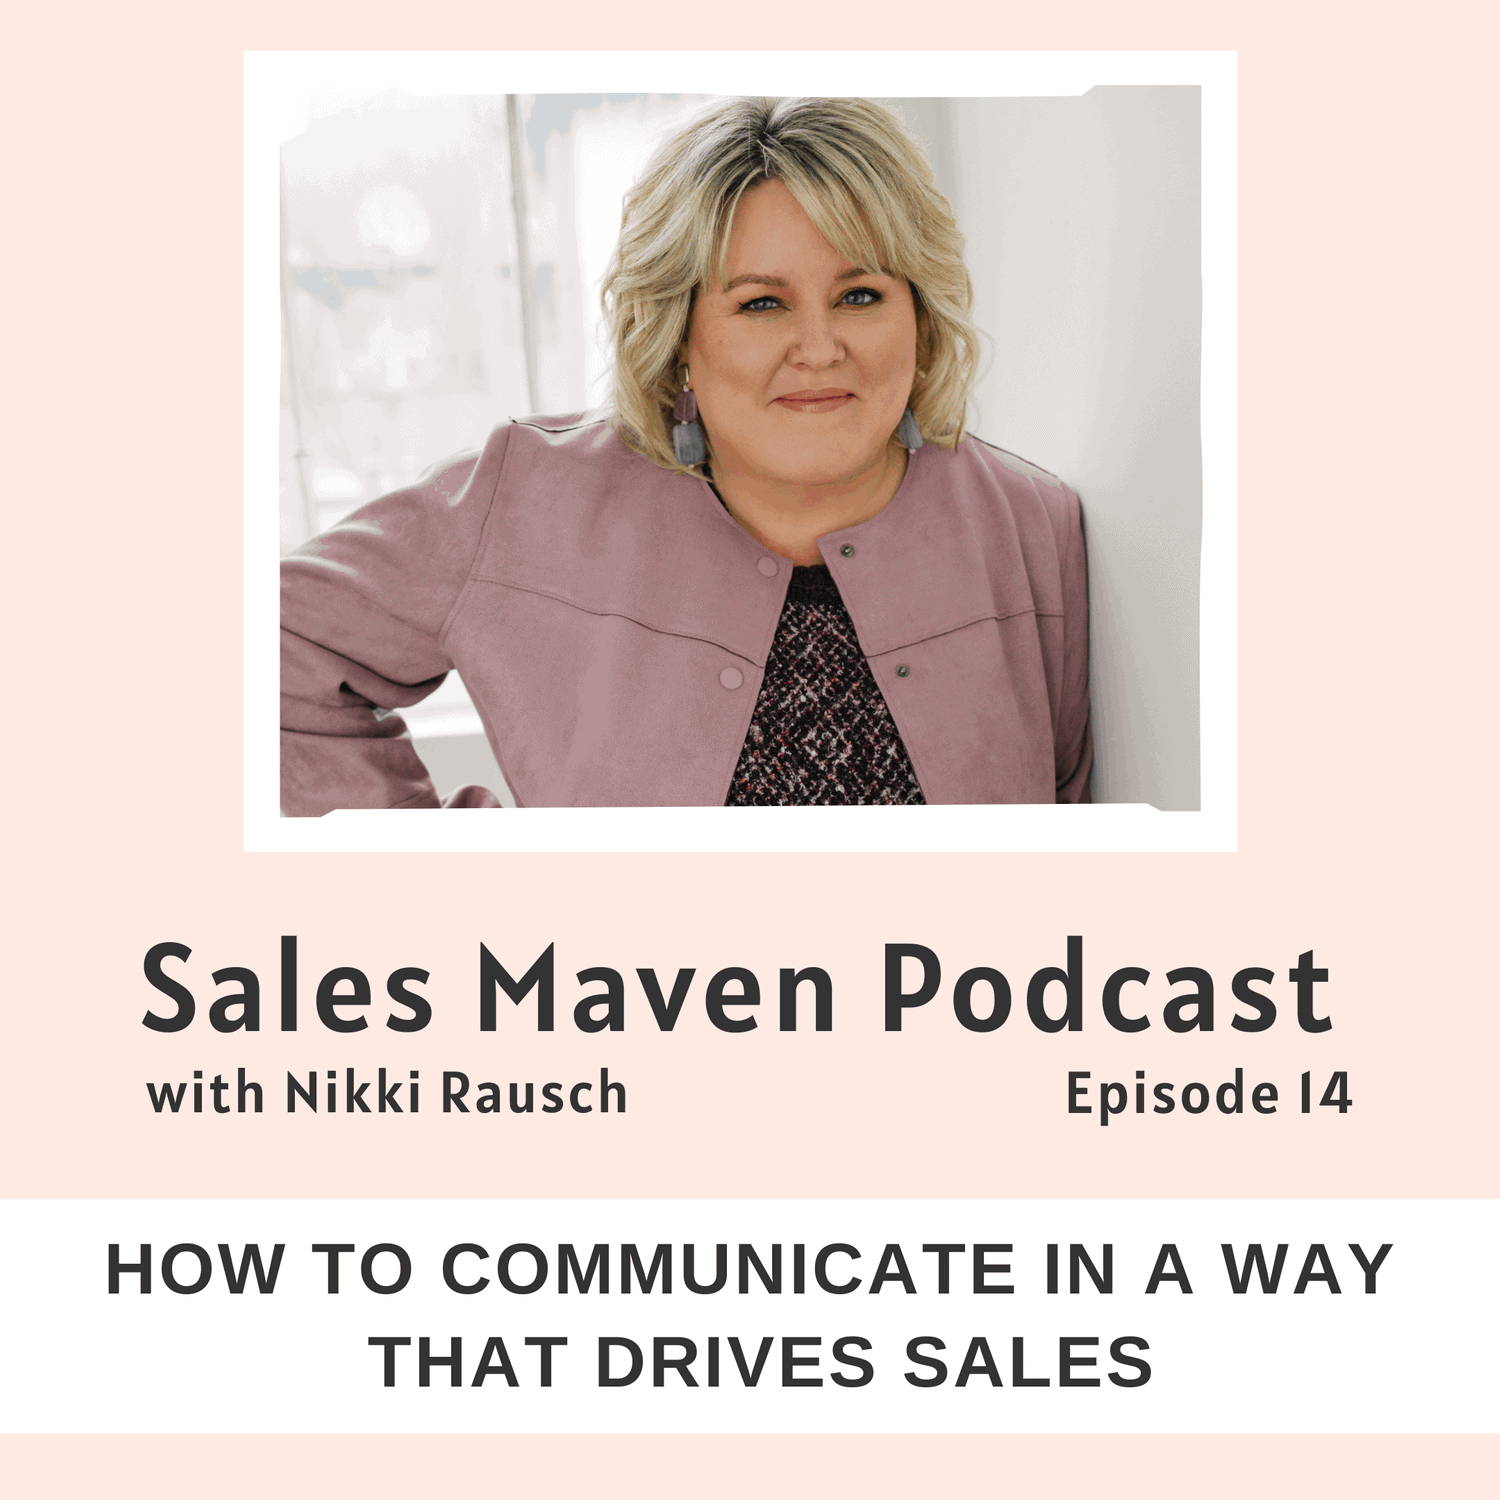 How to communicate in a way that drives sales